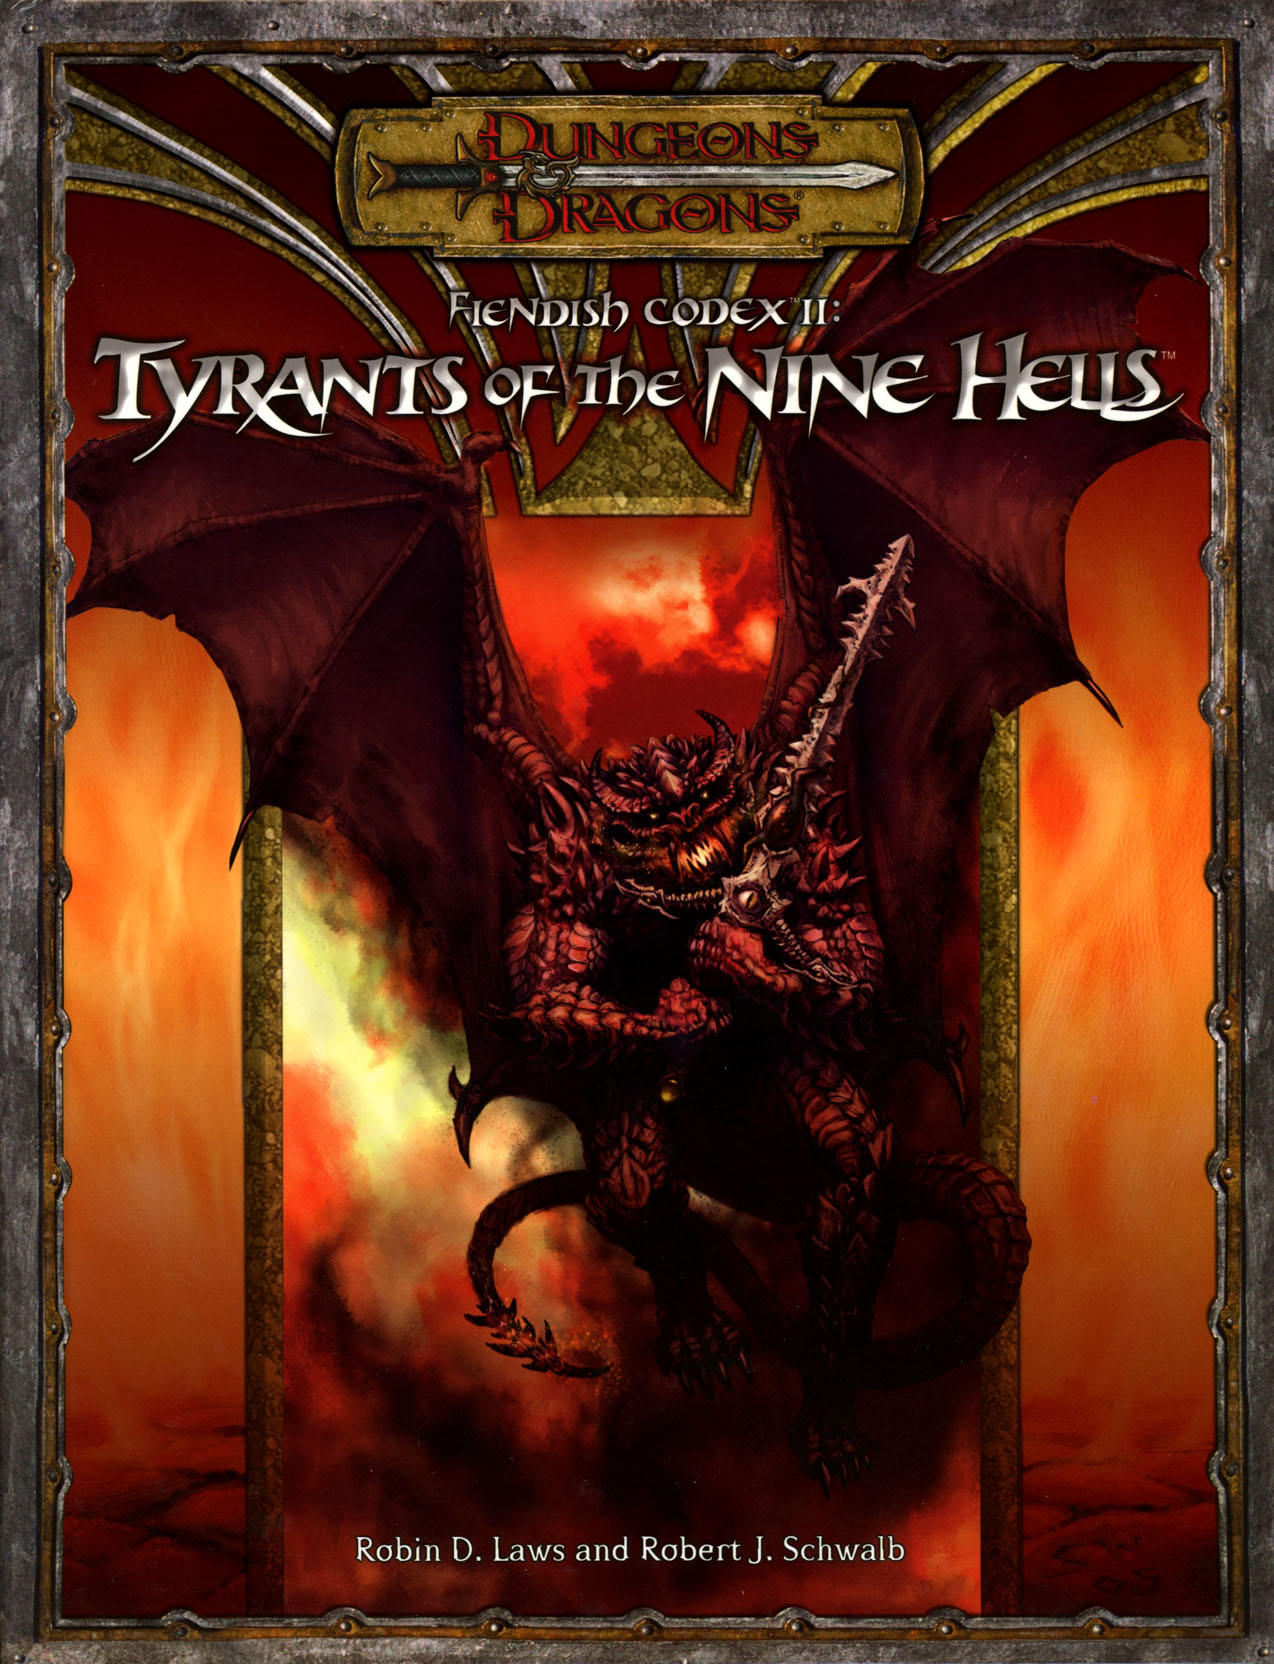 Fiendish Codex II: Tyrants of the Nine Hells | Forgotten